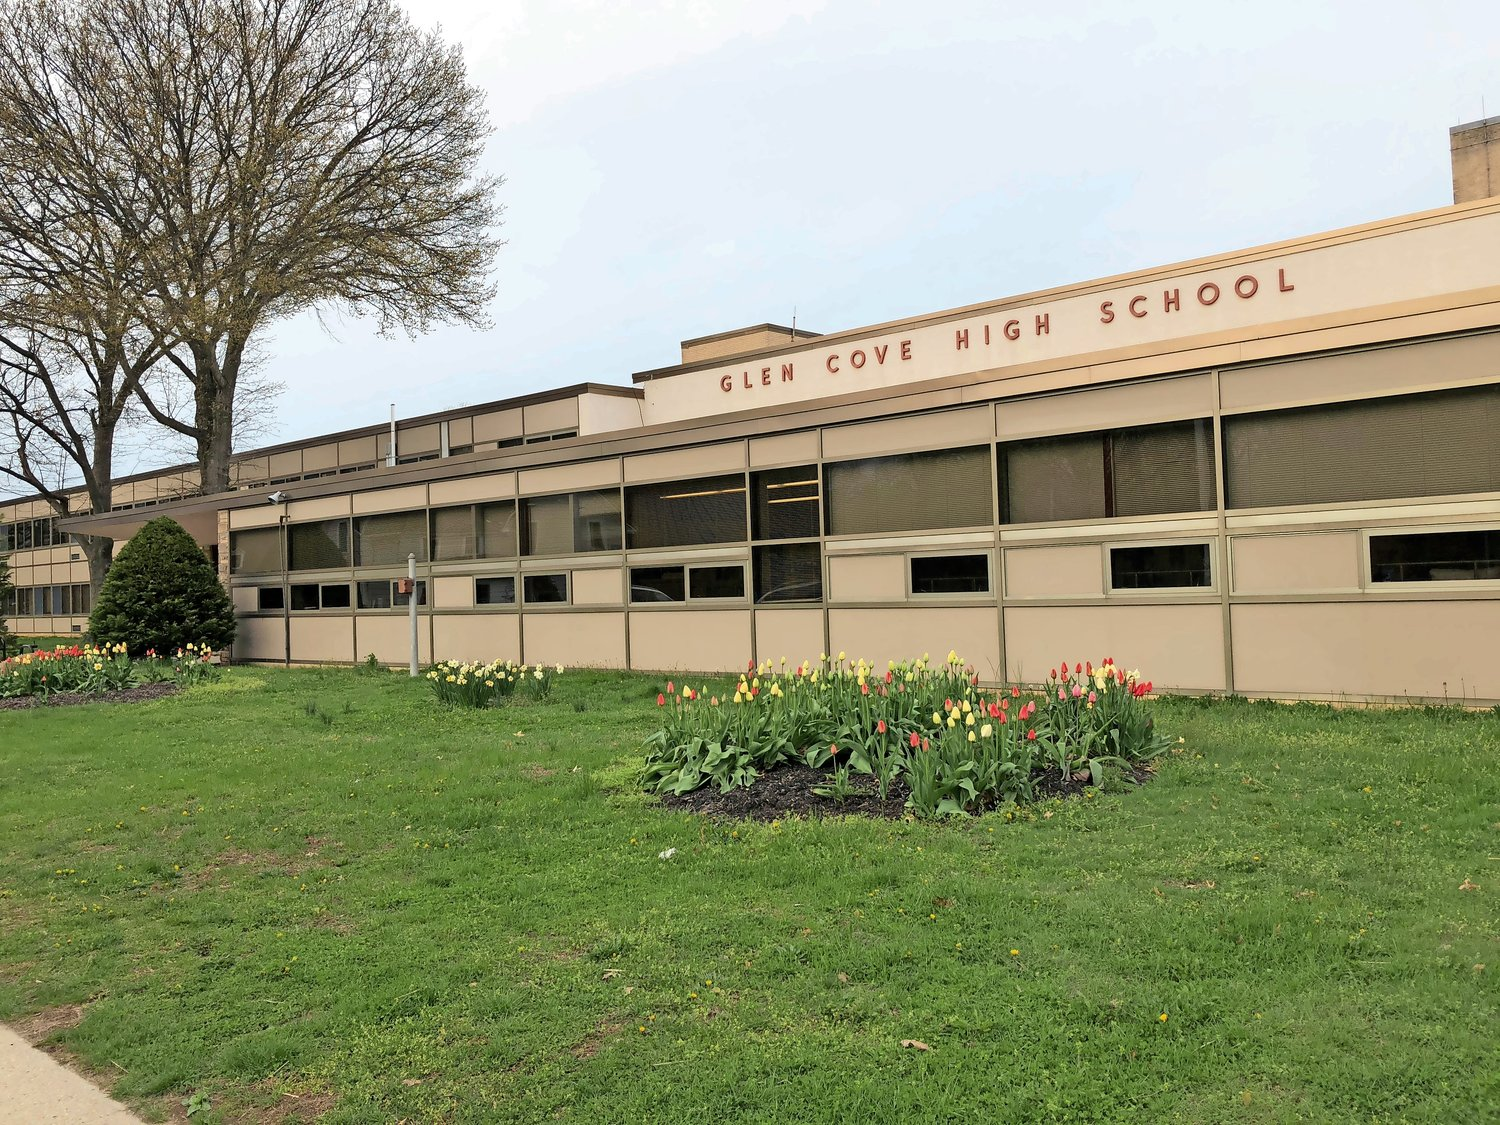 One of the key components of the 2019-20 school budget is the establishment of a nine-period day at Glen Cove High School.